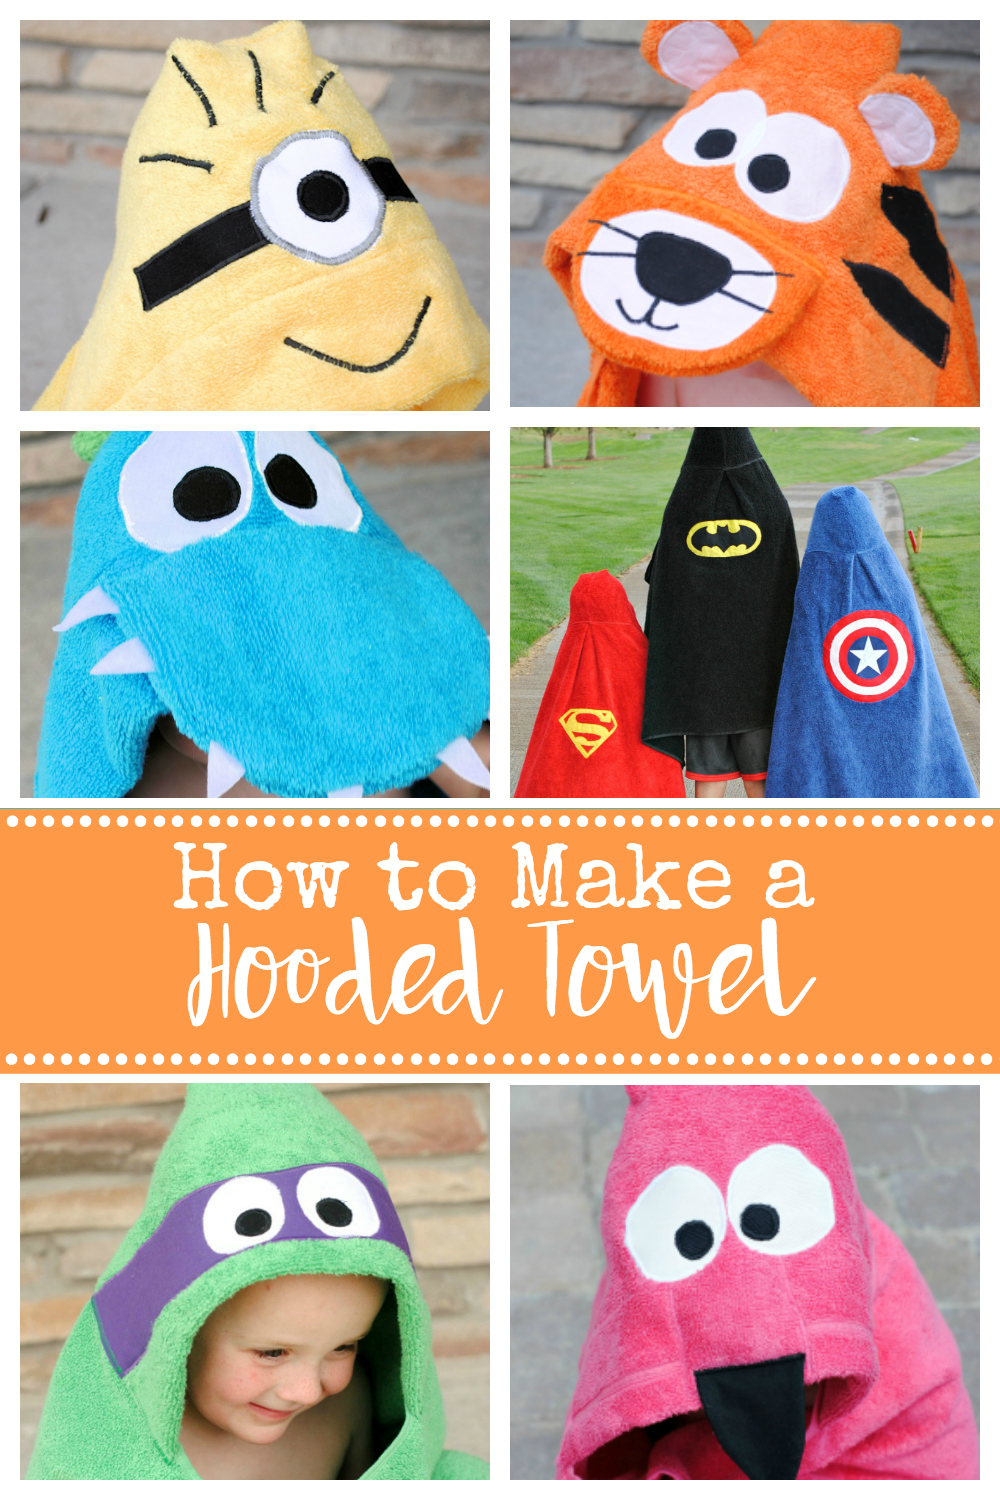 How To Make A Hooded Towel For Toddlers And Kids With Images